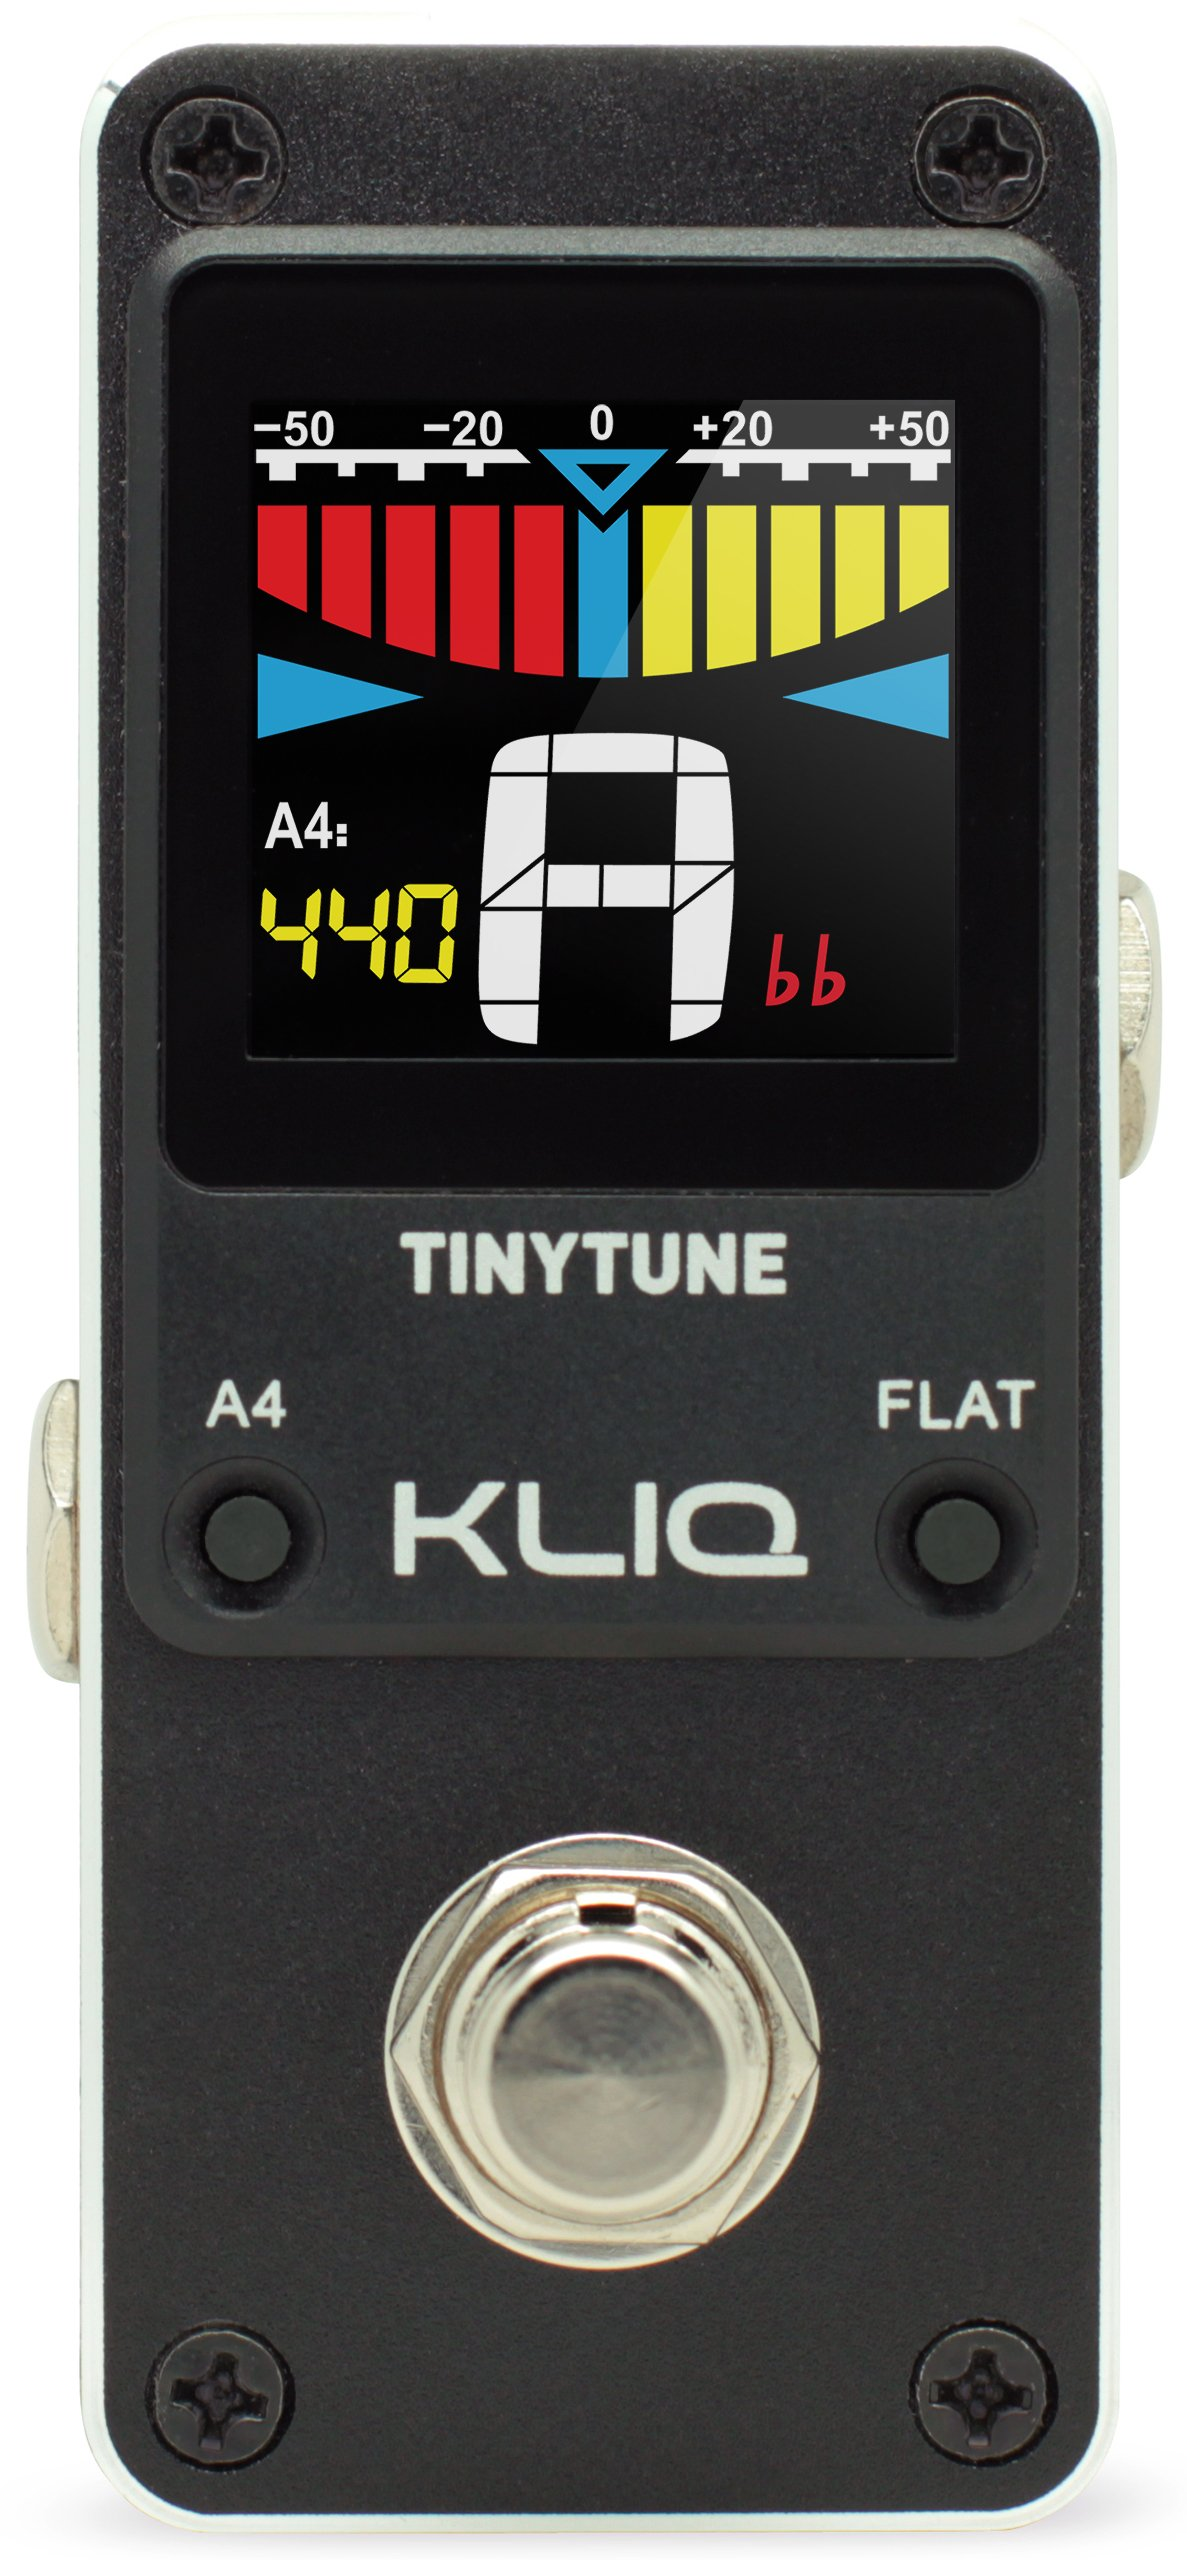 kliq tinytune mini chromatic tuner pedal for guitar bass 603895700040 ebay. Black Bedroom Furniture Sets. Home Design Ideas